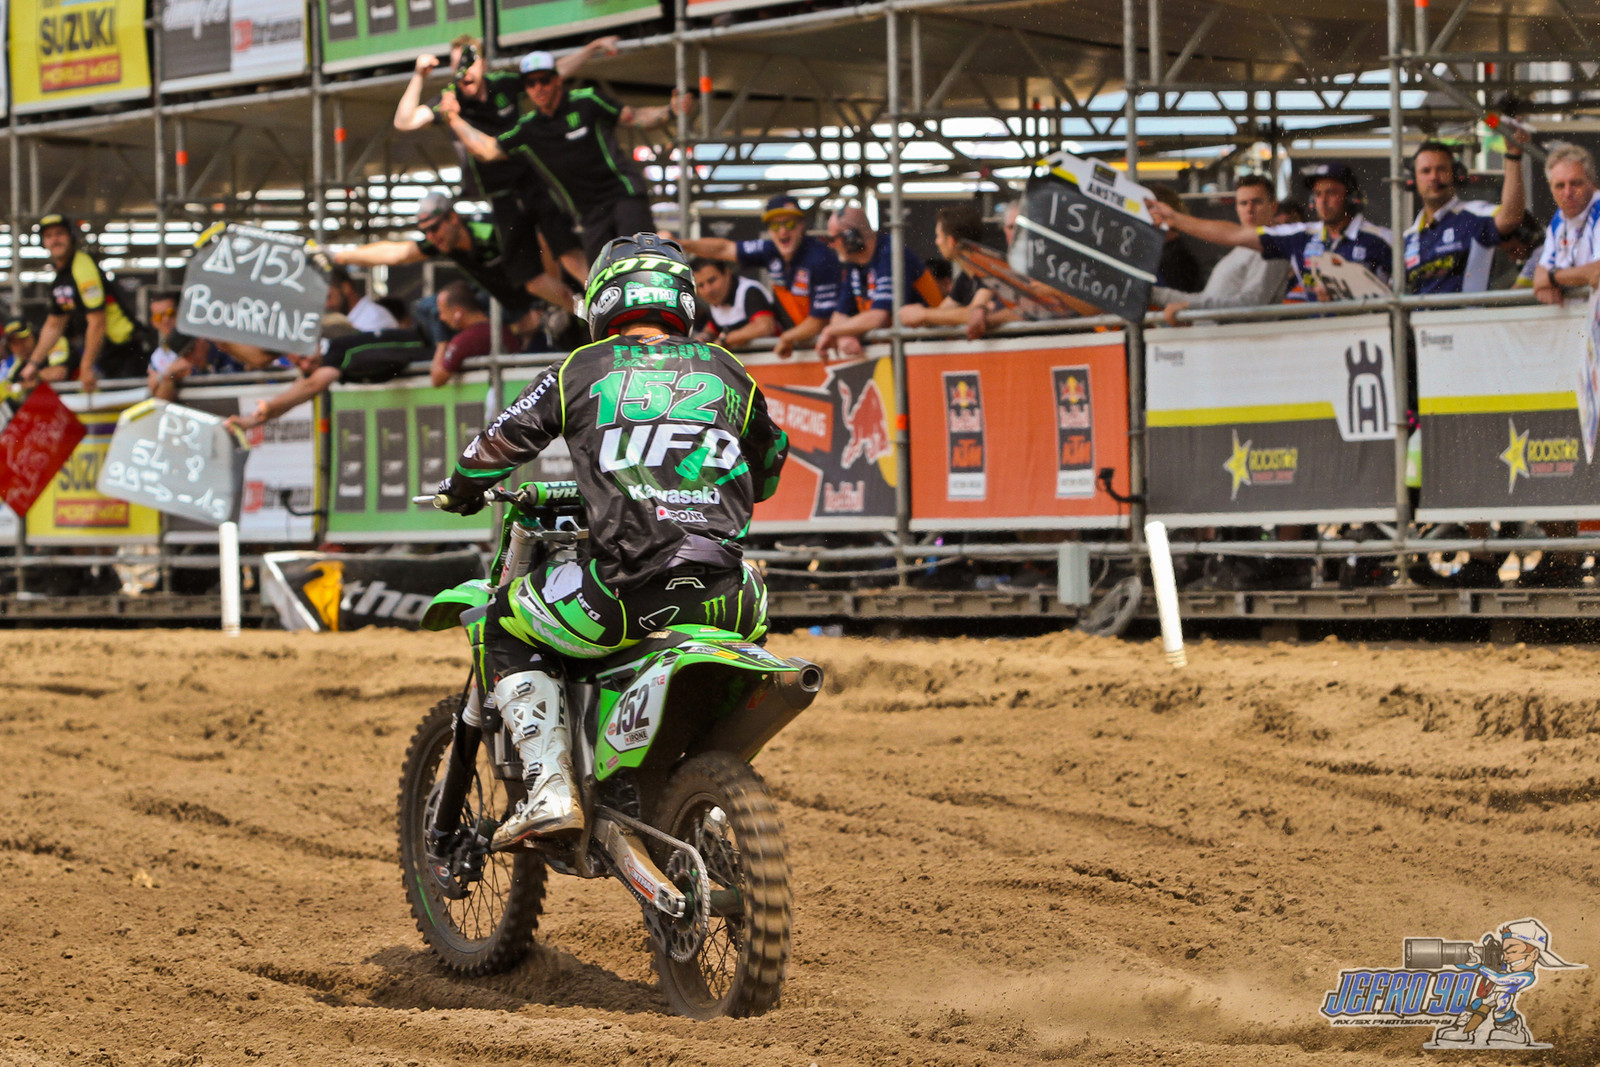 Petar Petrov - Photo Gallery: MXGP of Limburg - Motocross Pictures - Vital MX